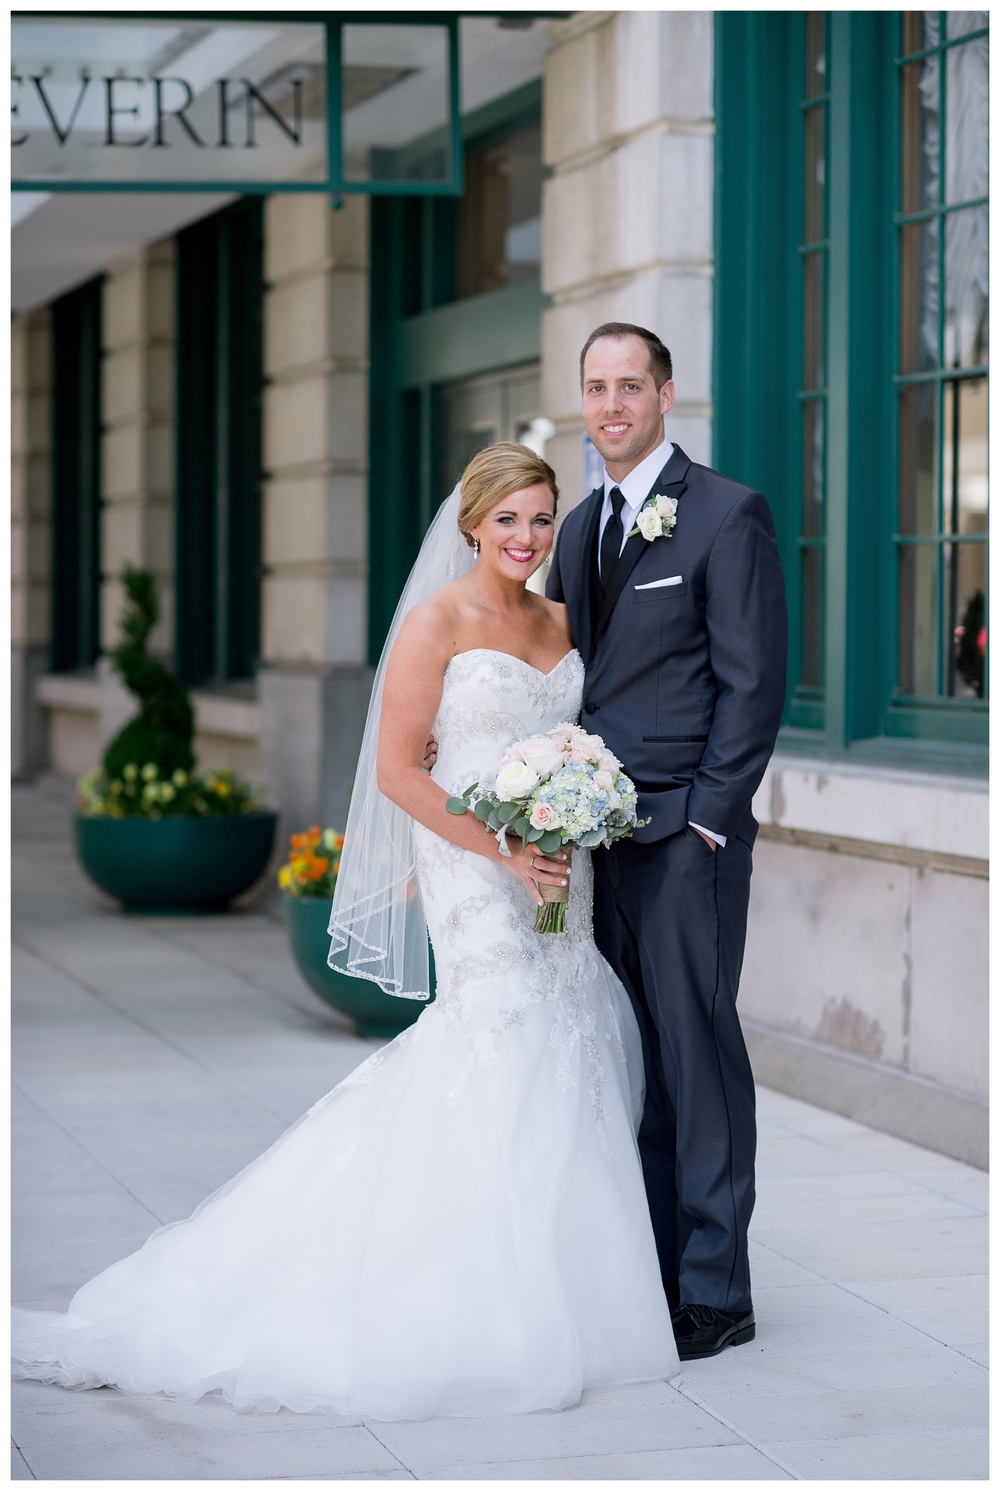 Rebecca_Bridges_Photography_Indianapolis_Wedding_Photographer_4163.jpg